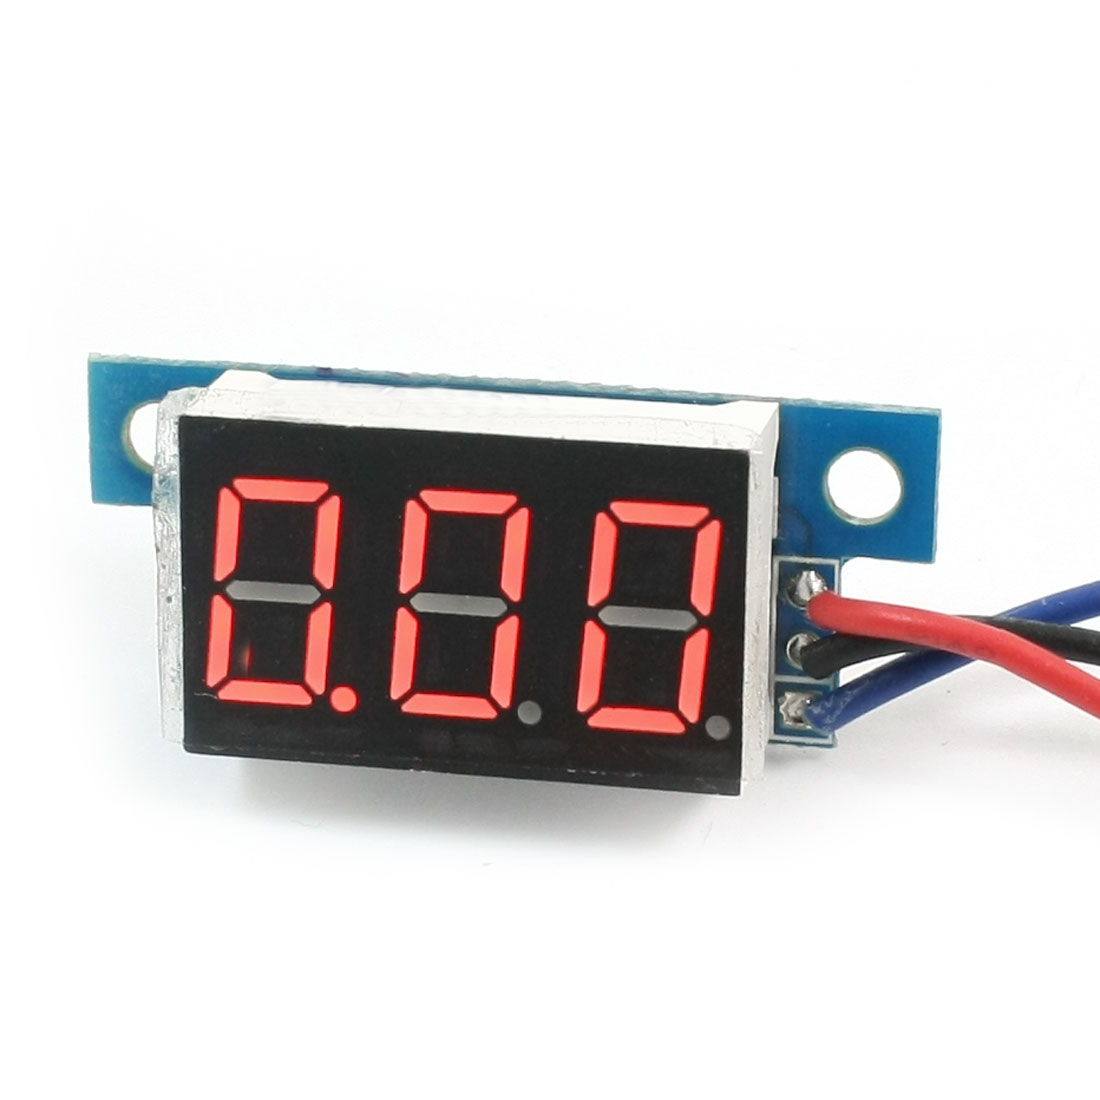 Digital DC 0-10V LED Display Red Digit Voltage Tester Gauge Panel Voltmeter